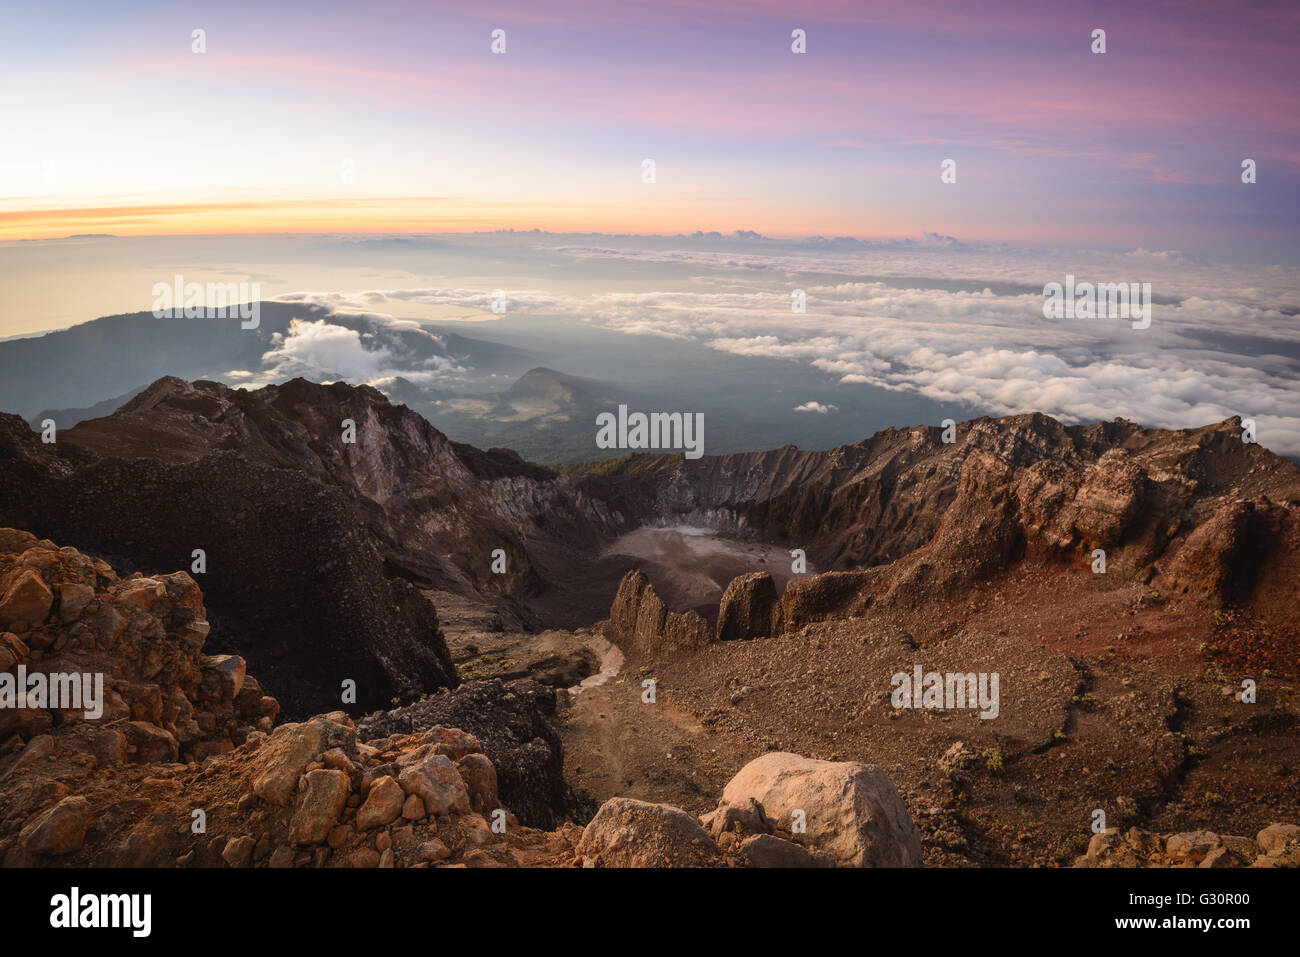 Looking out east from the summit of Mt. Rinjani in Lombok, Indonesia - Stock Image